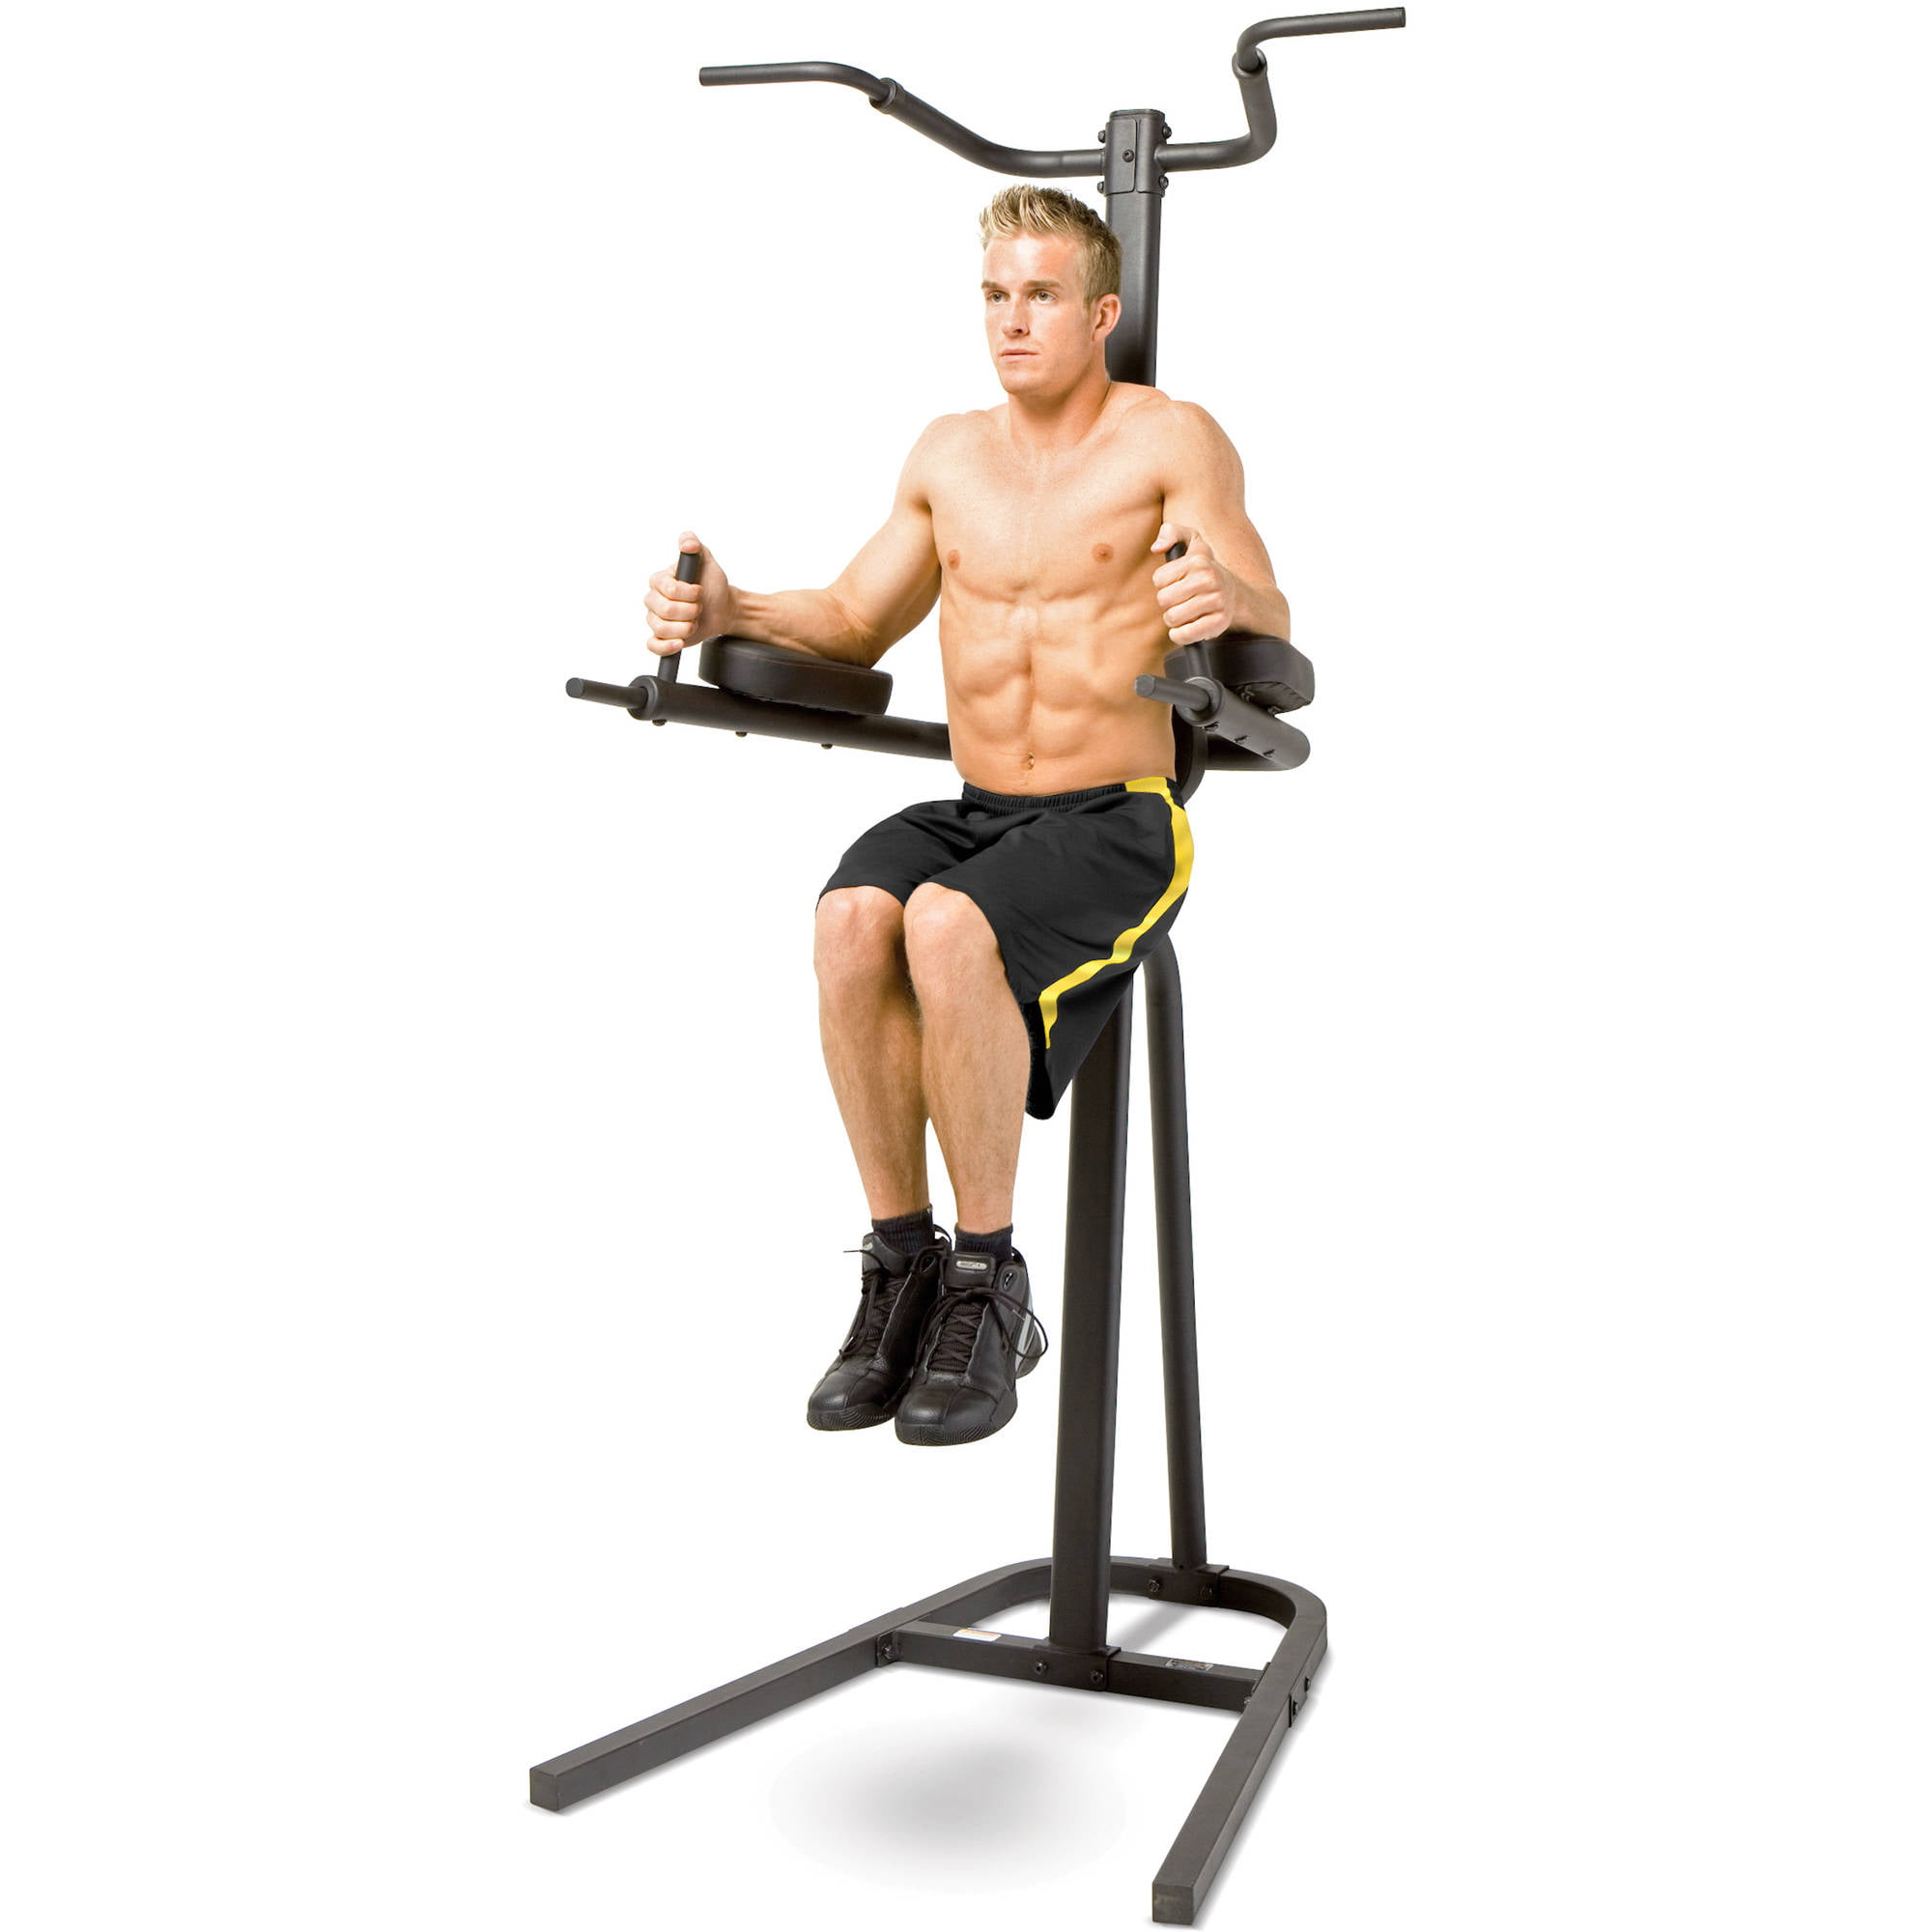 wide bars spin plates set weight the fully selection authority offers dumbbell adjustable sets lock in and pin variation of bench range sports jll is a vinyl versatility